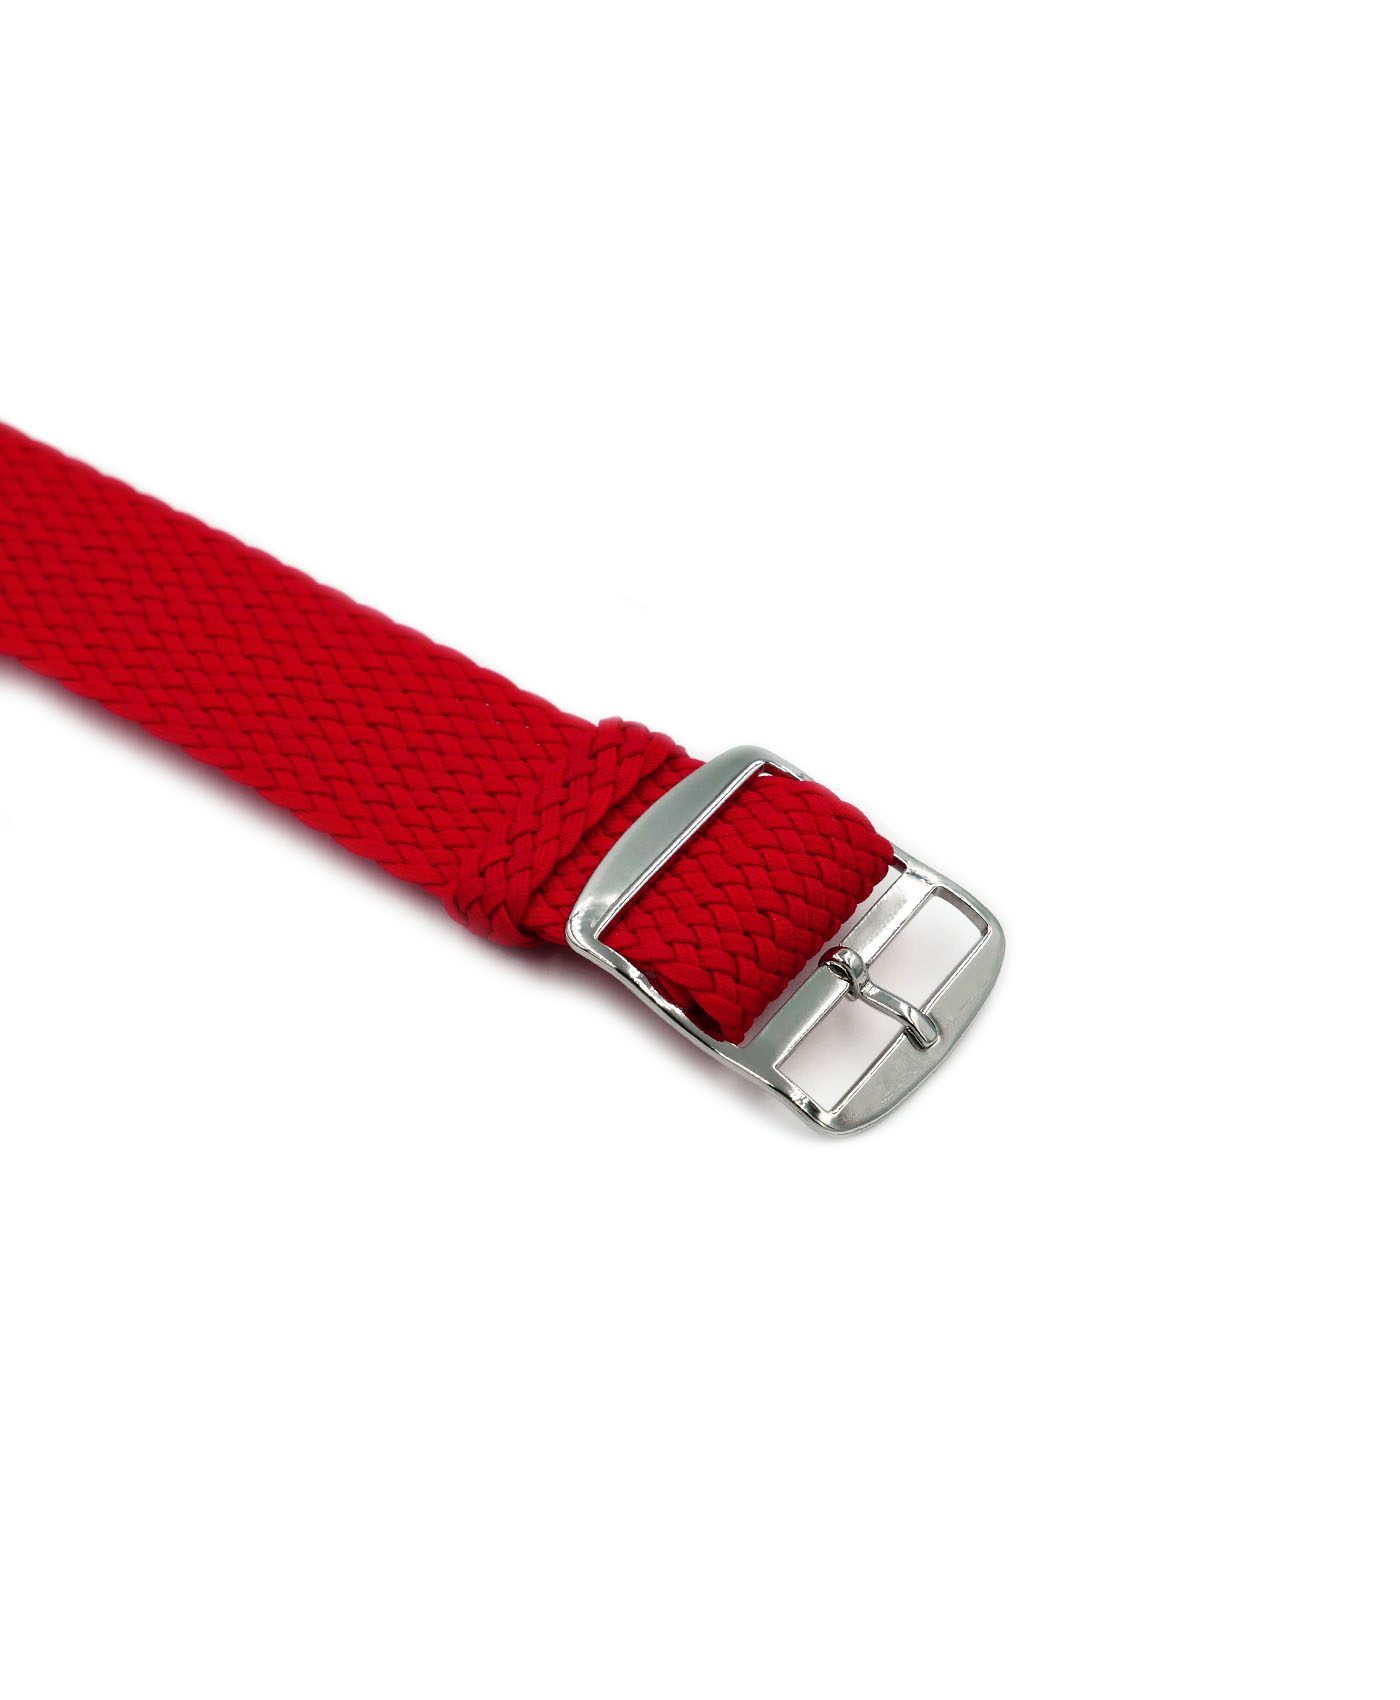 Watchbandit Premium Perlon Watch strap red buckle